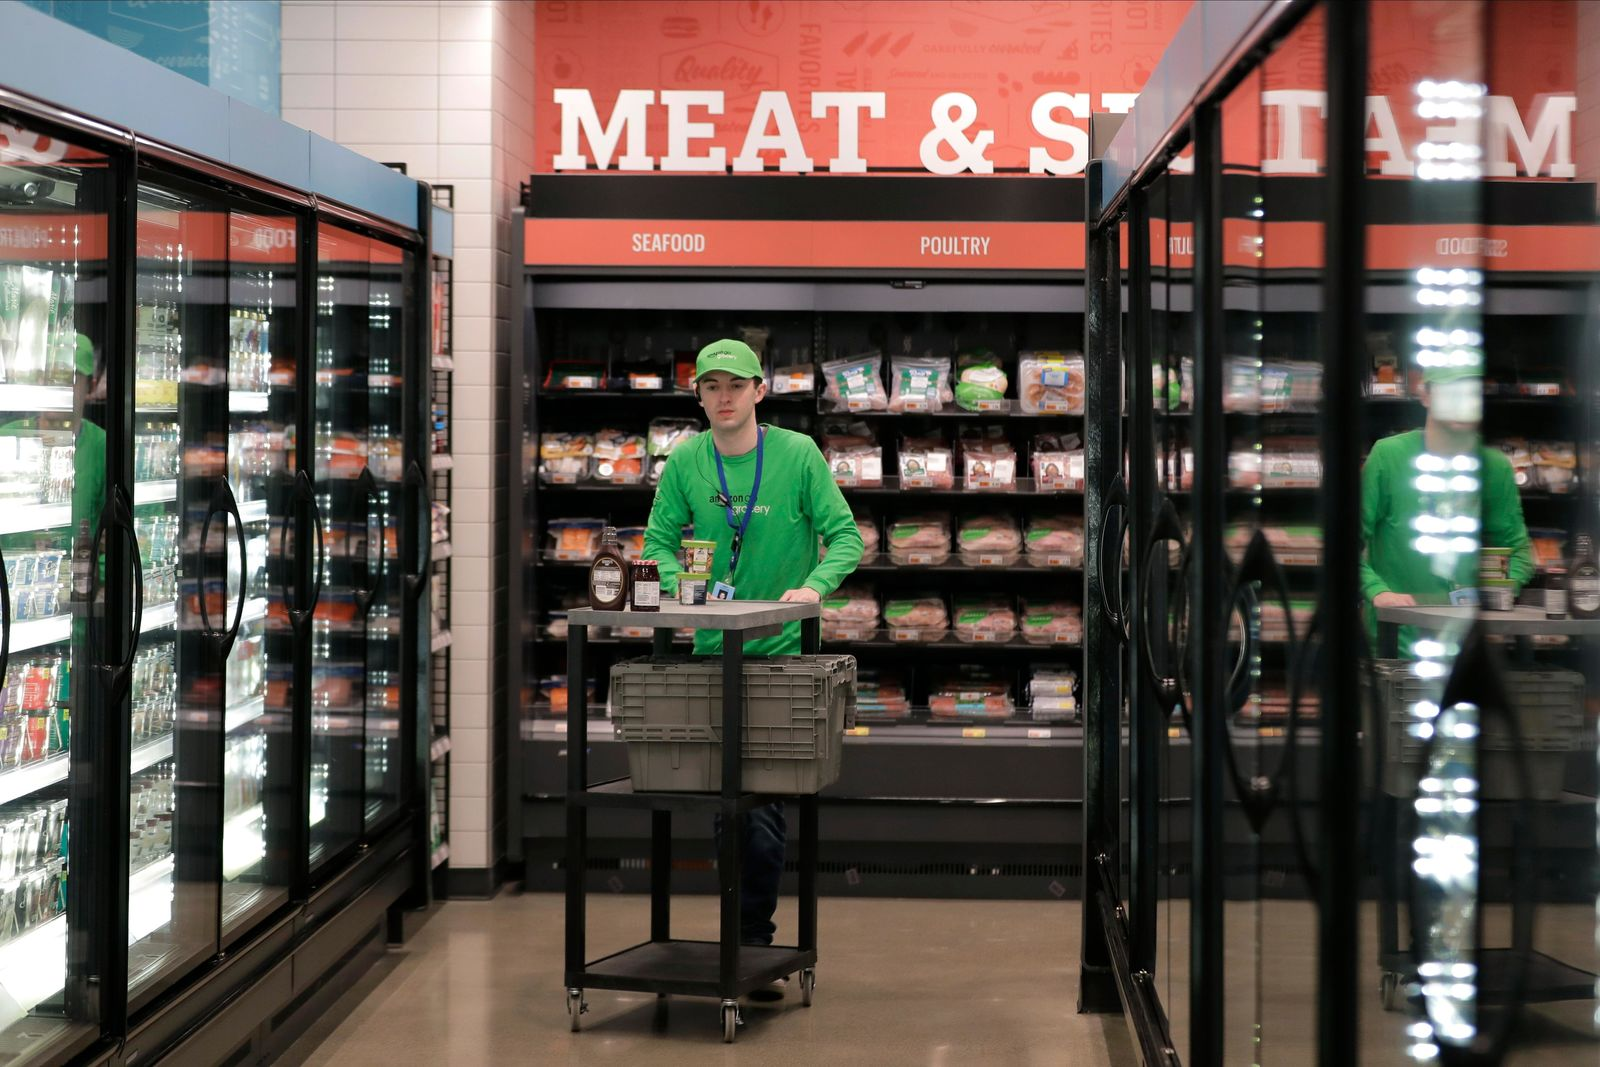 In this Feb. 21, 2020 photo, a worker pushes a cart inside an Amazon Go Grocery store set to open soon in Seattle's Capitol Hill neighborhood. (AP Photo/Ted S. Warren)